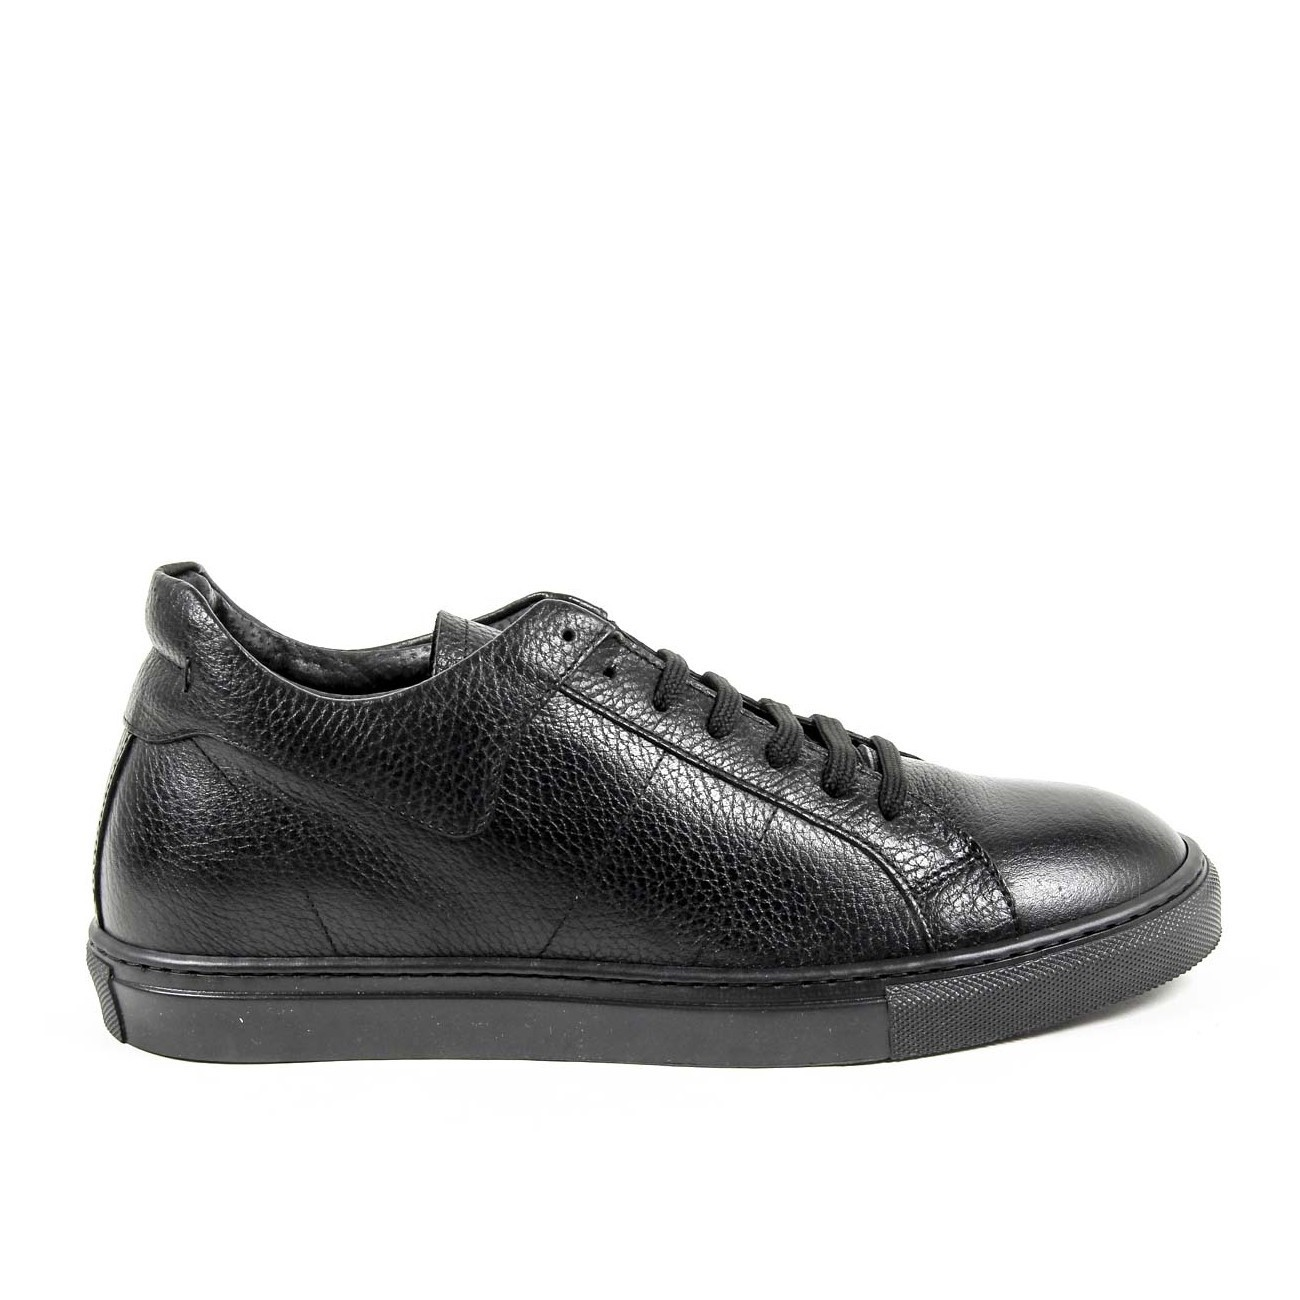 Primary image for V 1969 Italia Mens Sneaker V5421 ALCE BOTTOLATO NERO